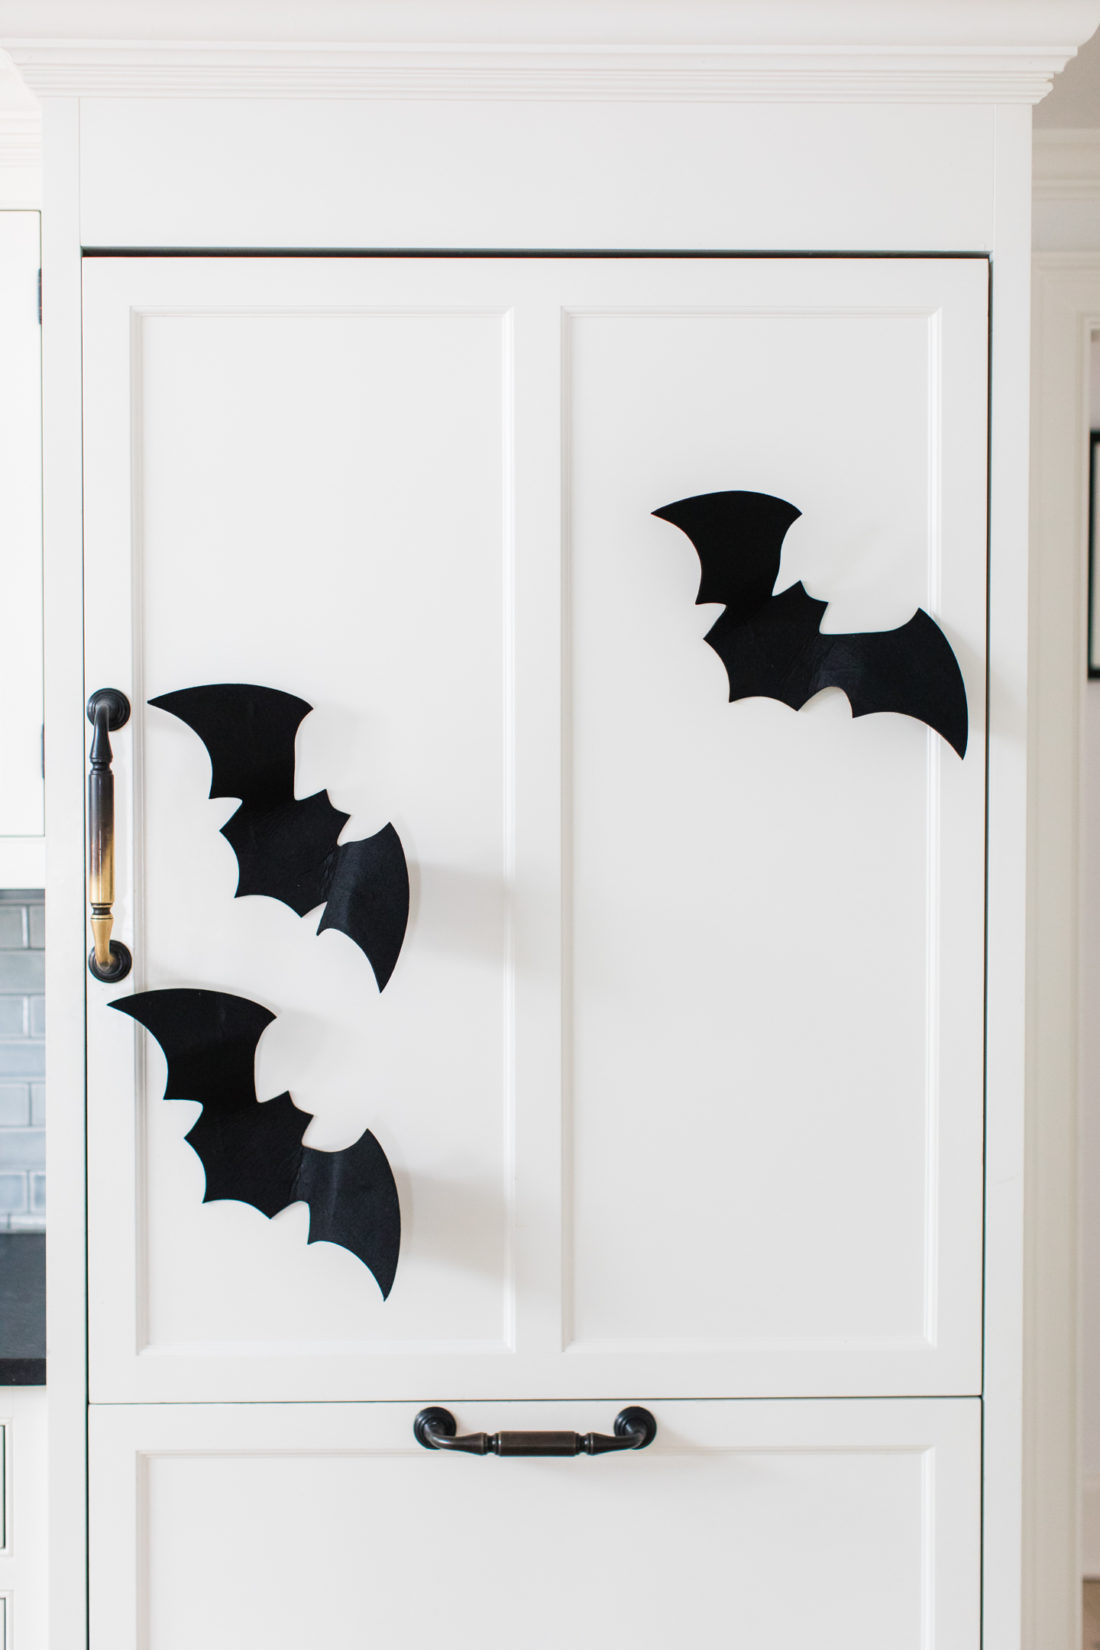 Felt bats land on the refrigerator in Eva Amurri Martino's Connnecticut kitchen